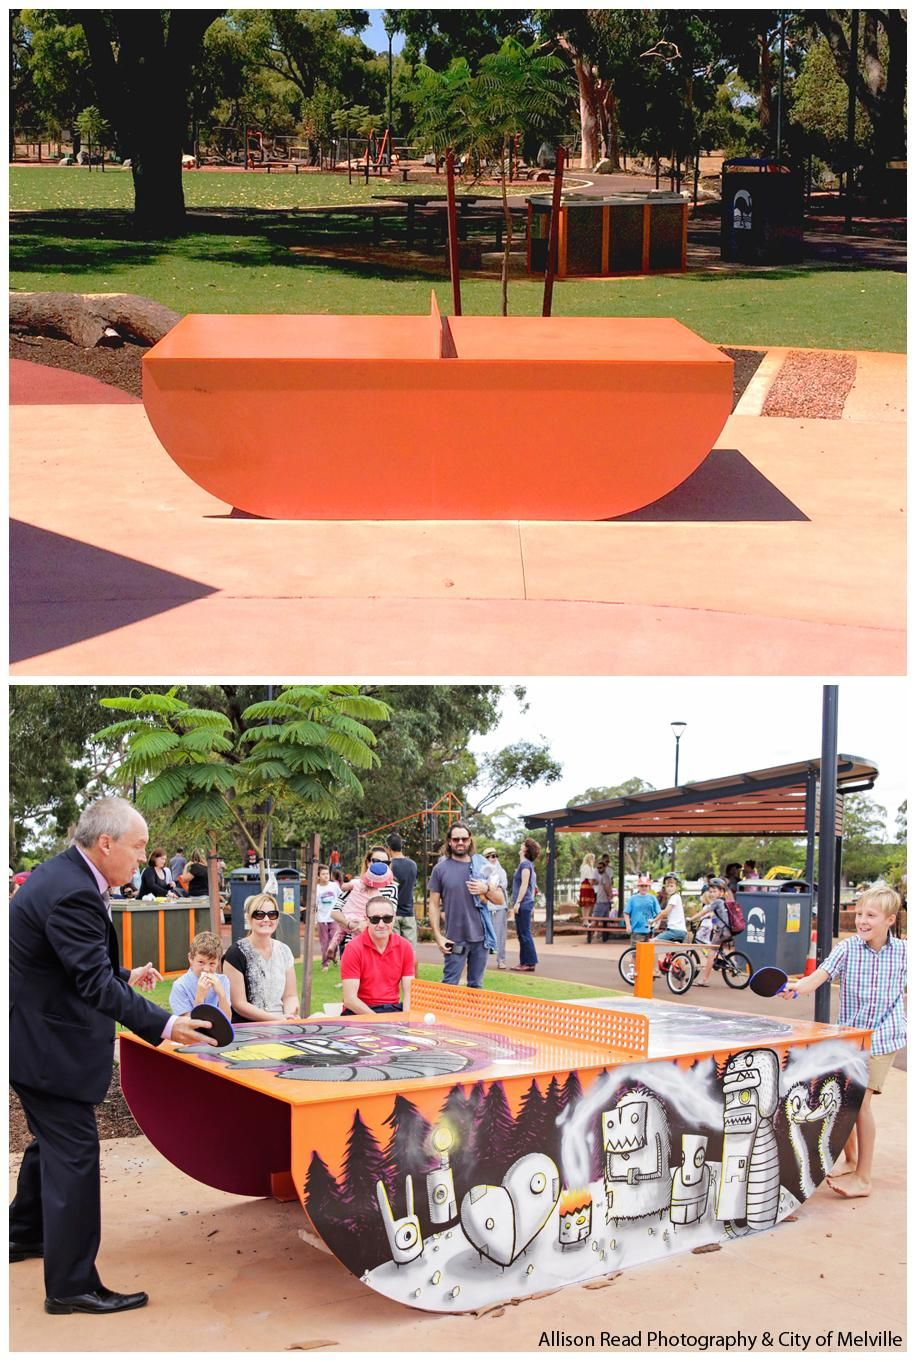 This Outdoor Ping Pong Table Is Free To Use For The Whole Melville Community And Doubles As A Cool Piece Of Public Art Do You Like The Plain Orange Or